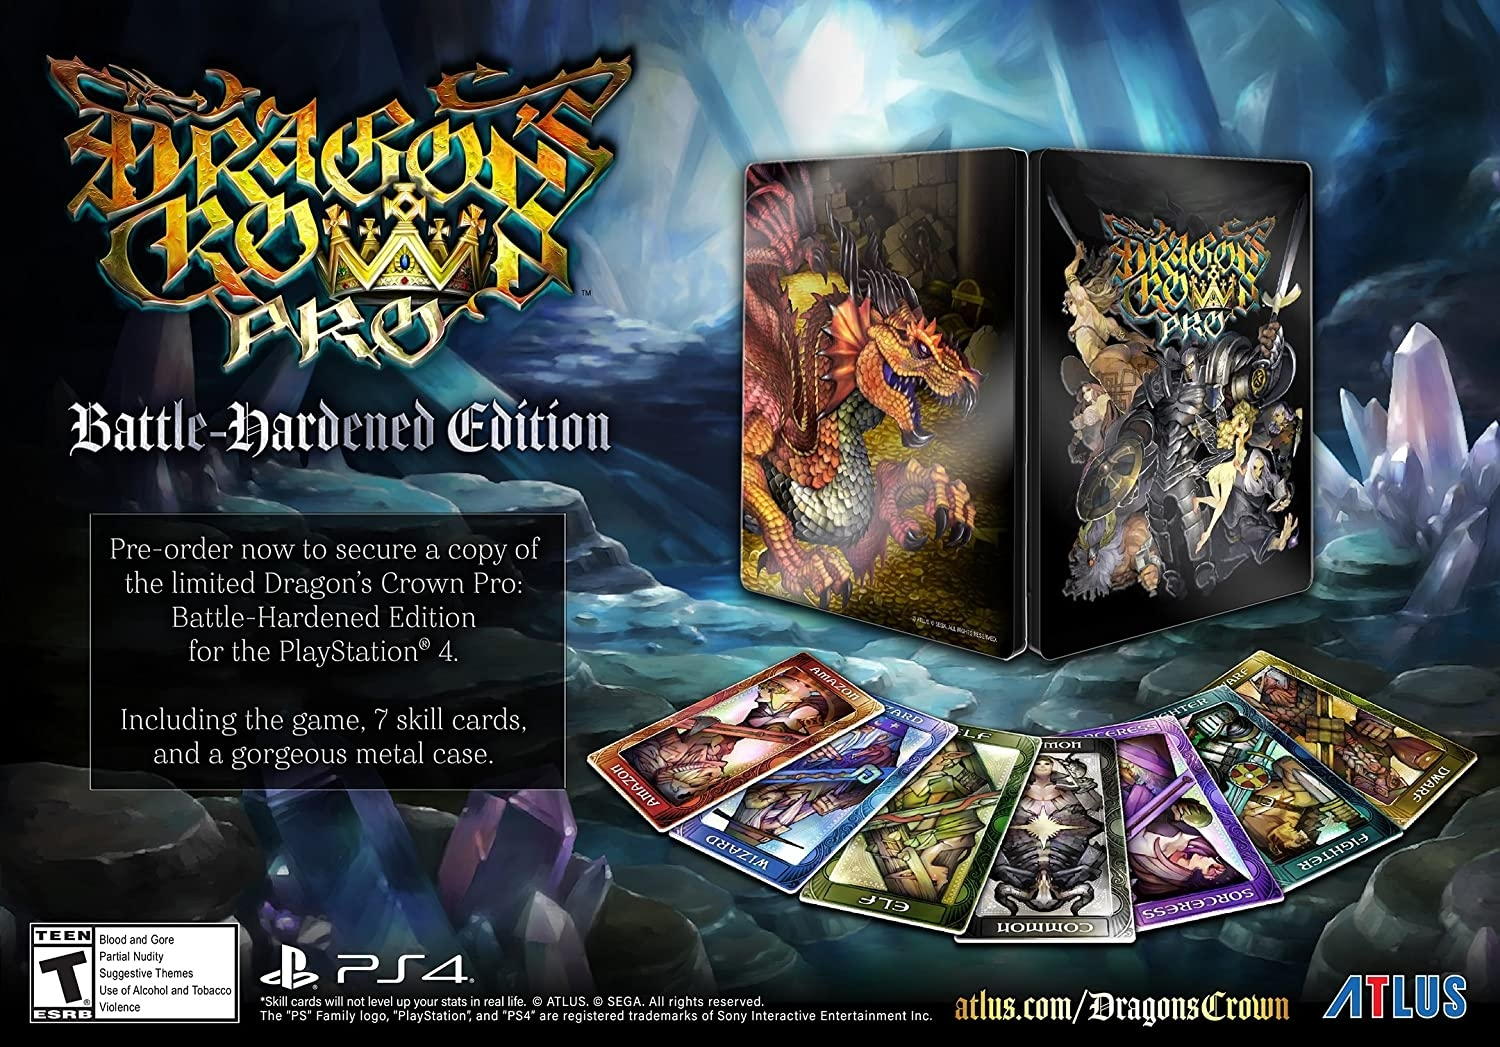 Dragon's Crown Prо - Battle Hardened Edition (PS4)